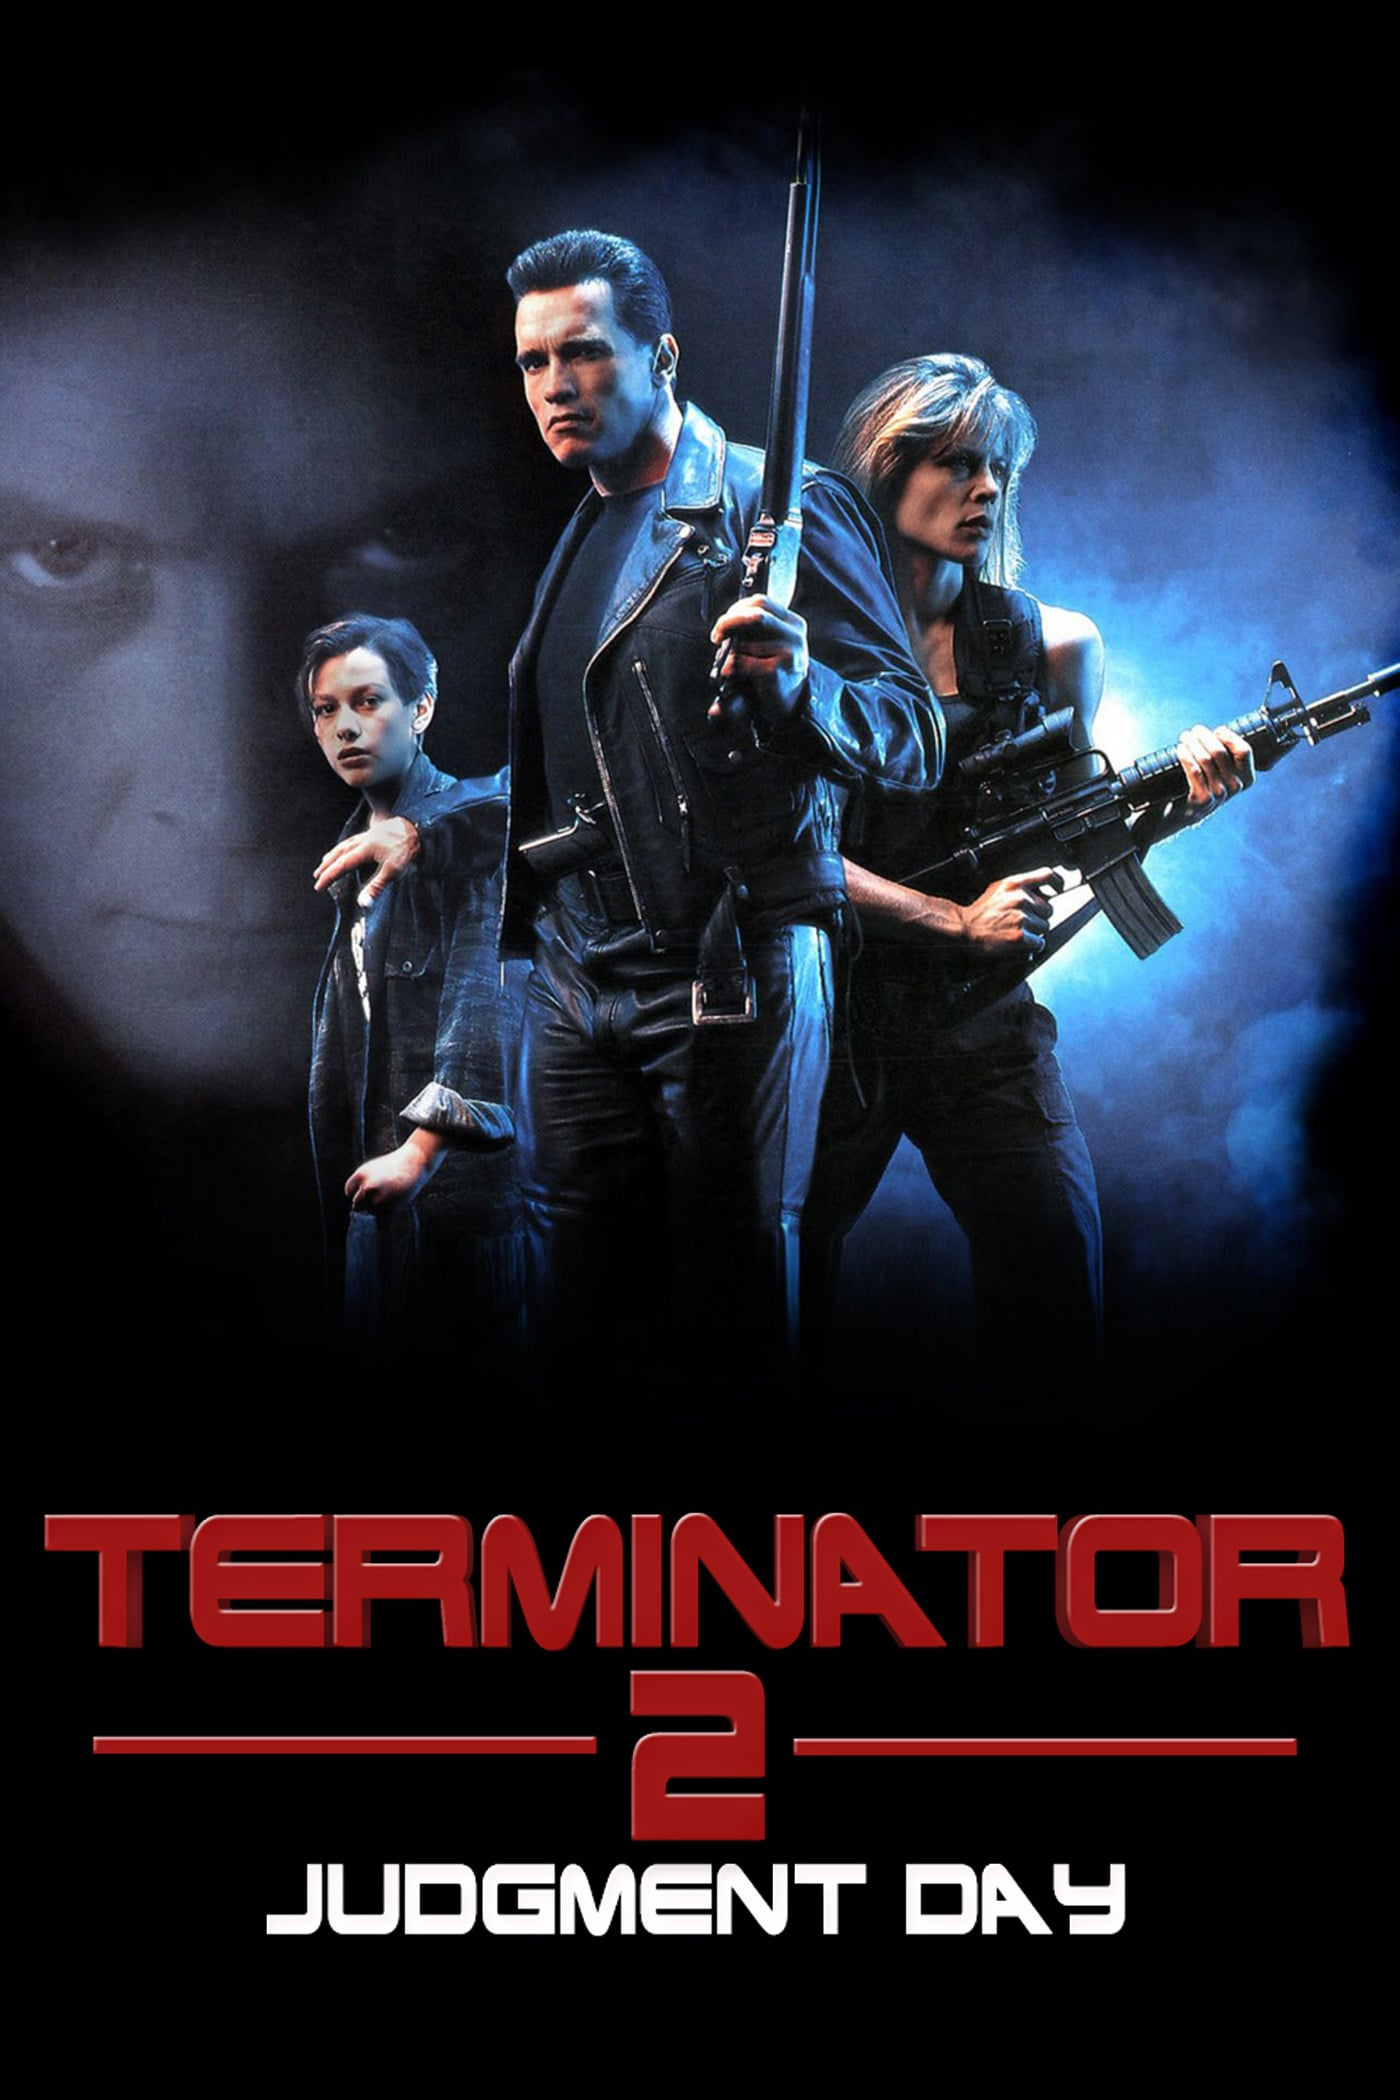 Terminator 2: Judgment Day Movie Poster - ID: 348097 ...